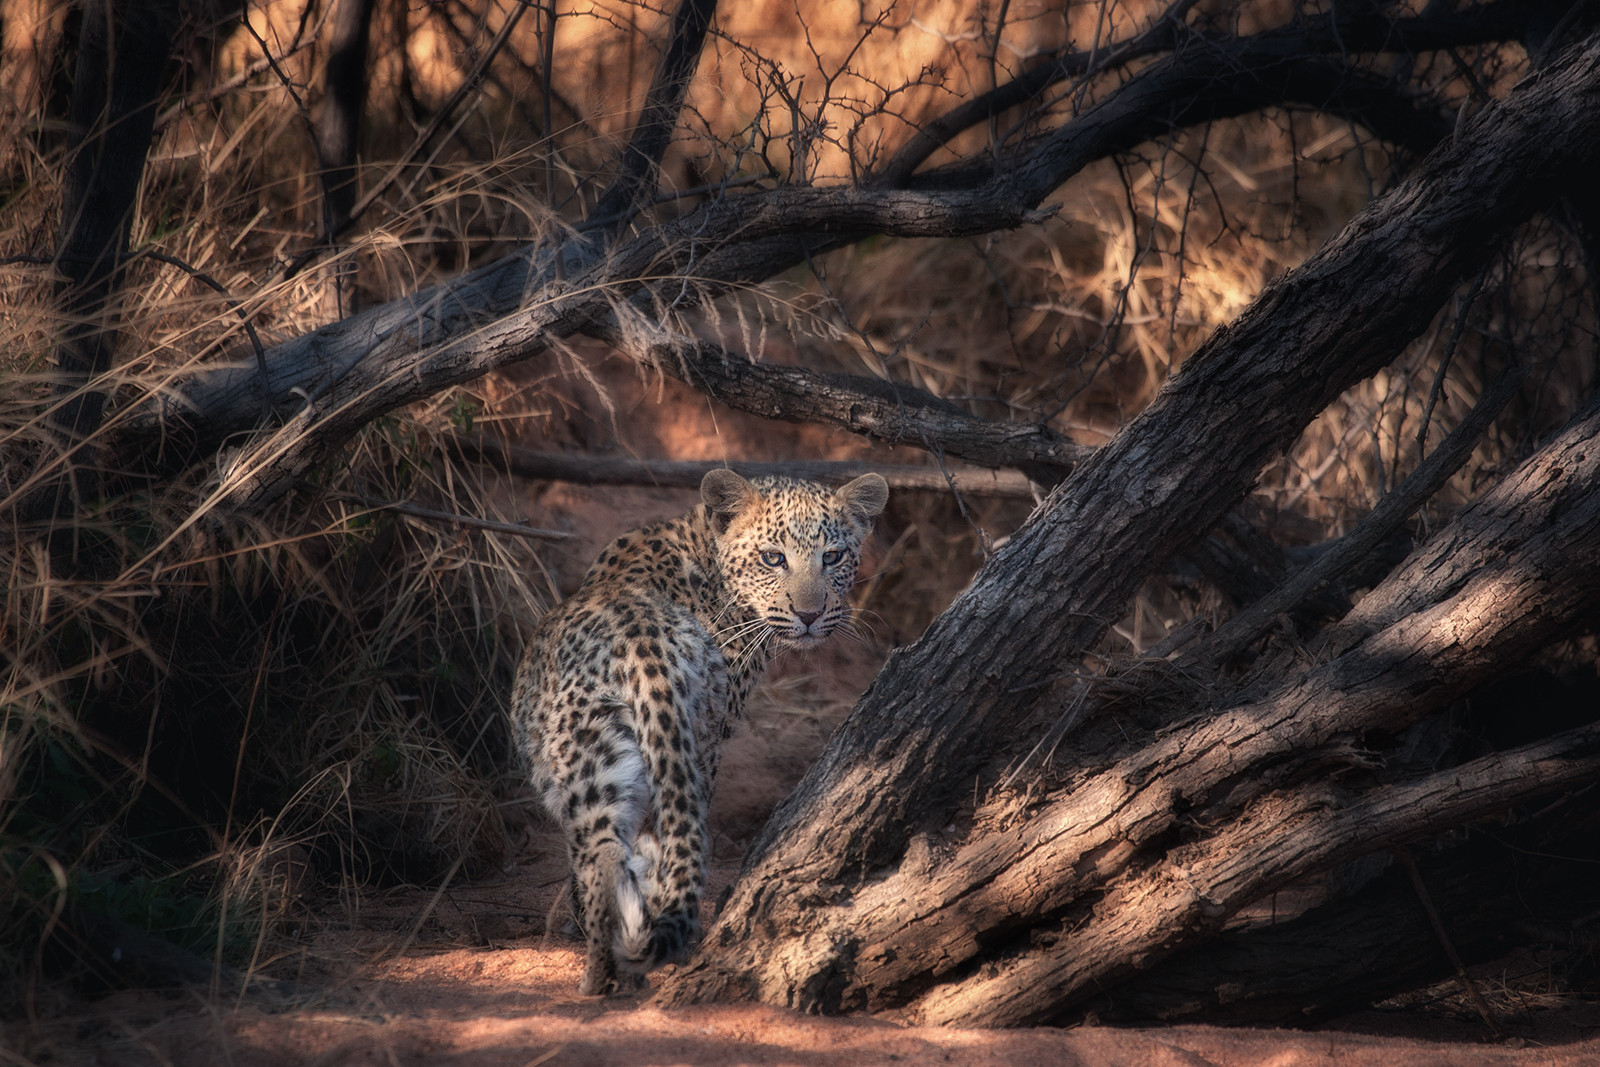 PDI - Leopard Cub by Colin Ross (14 marks)